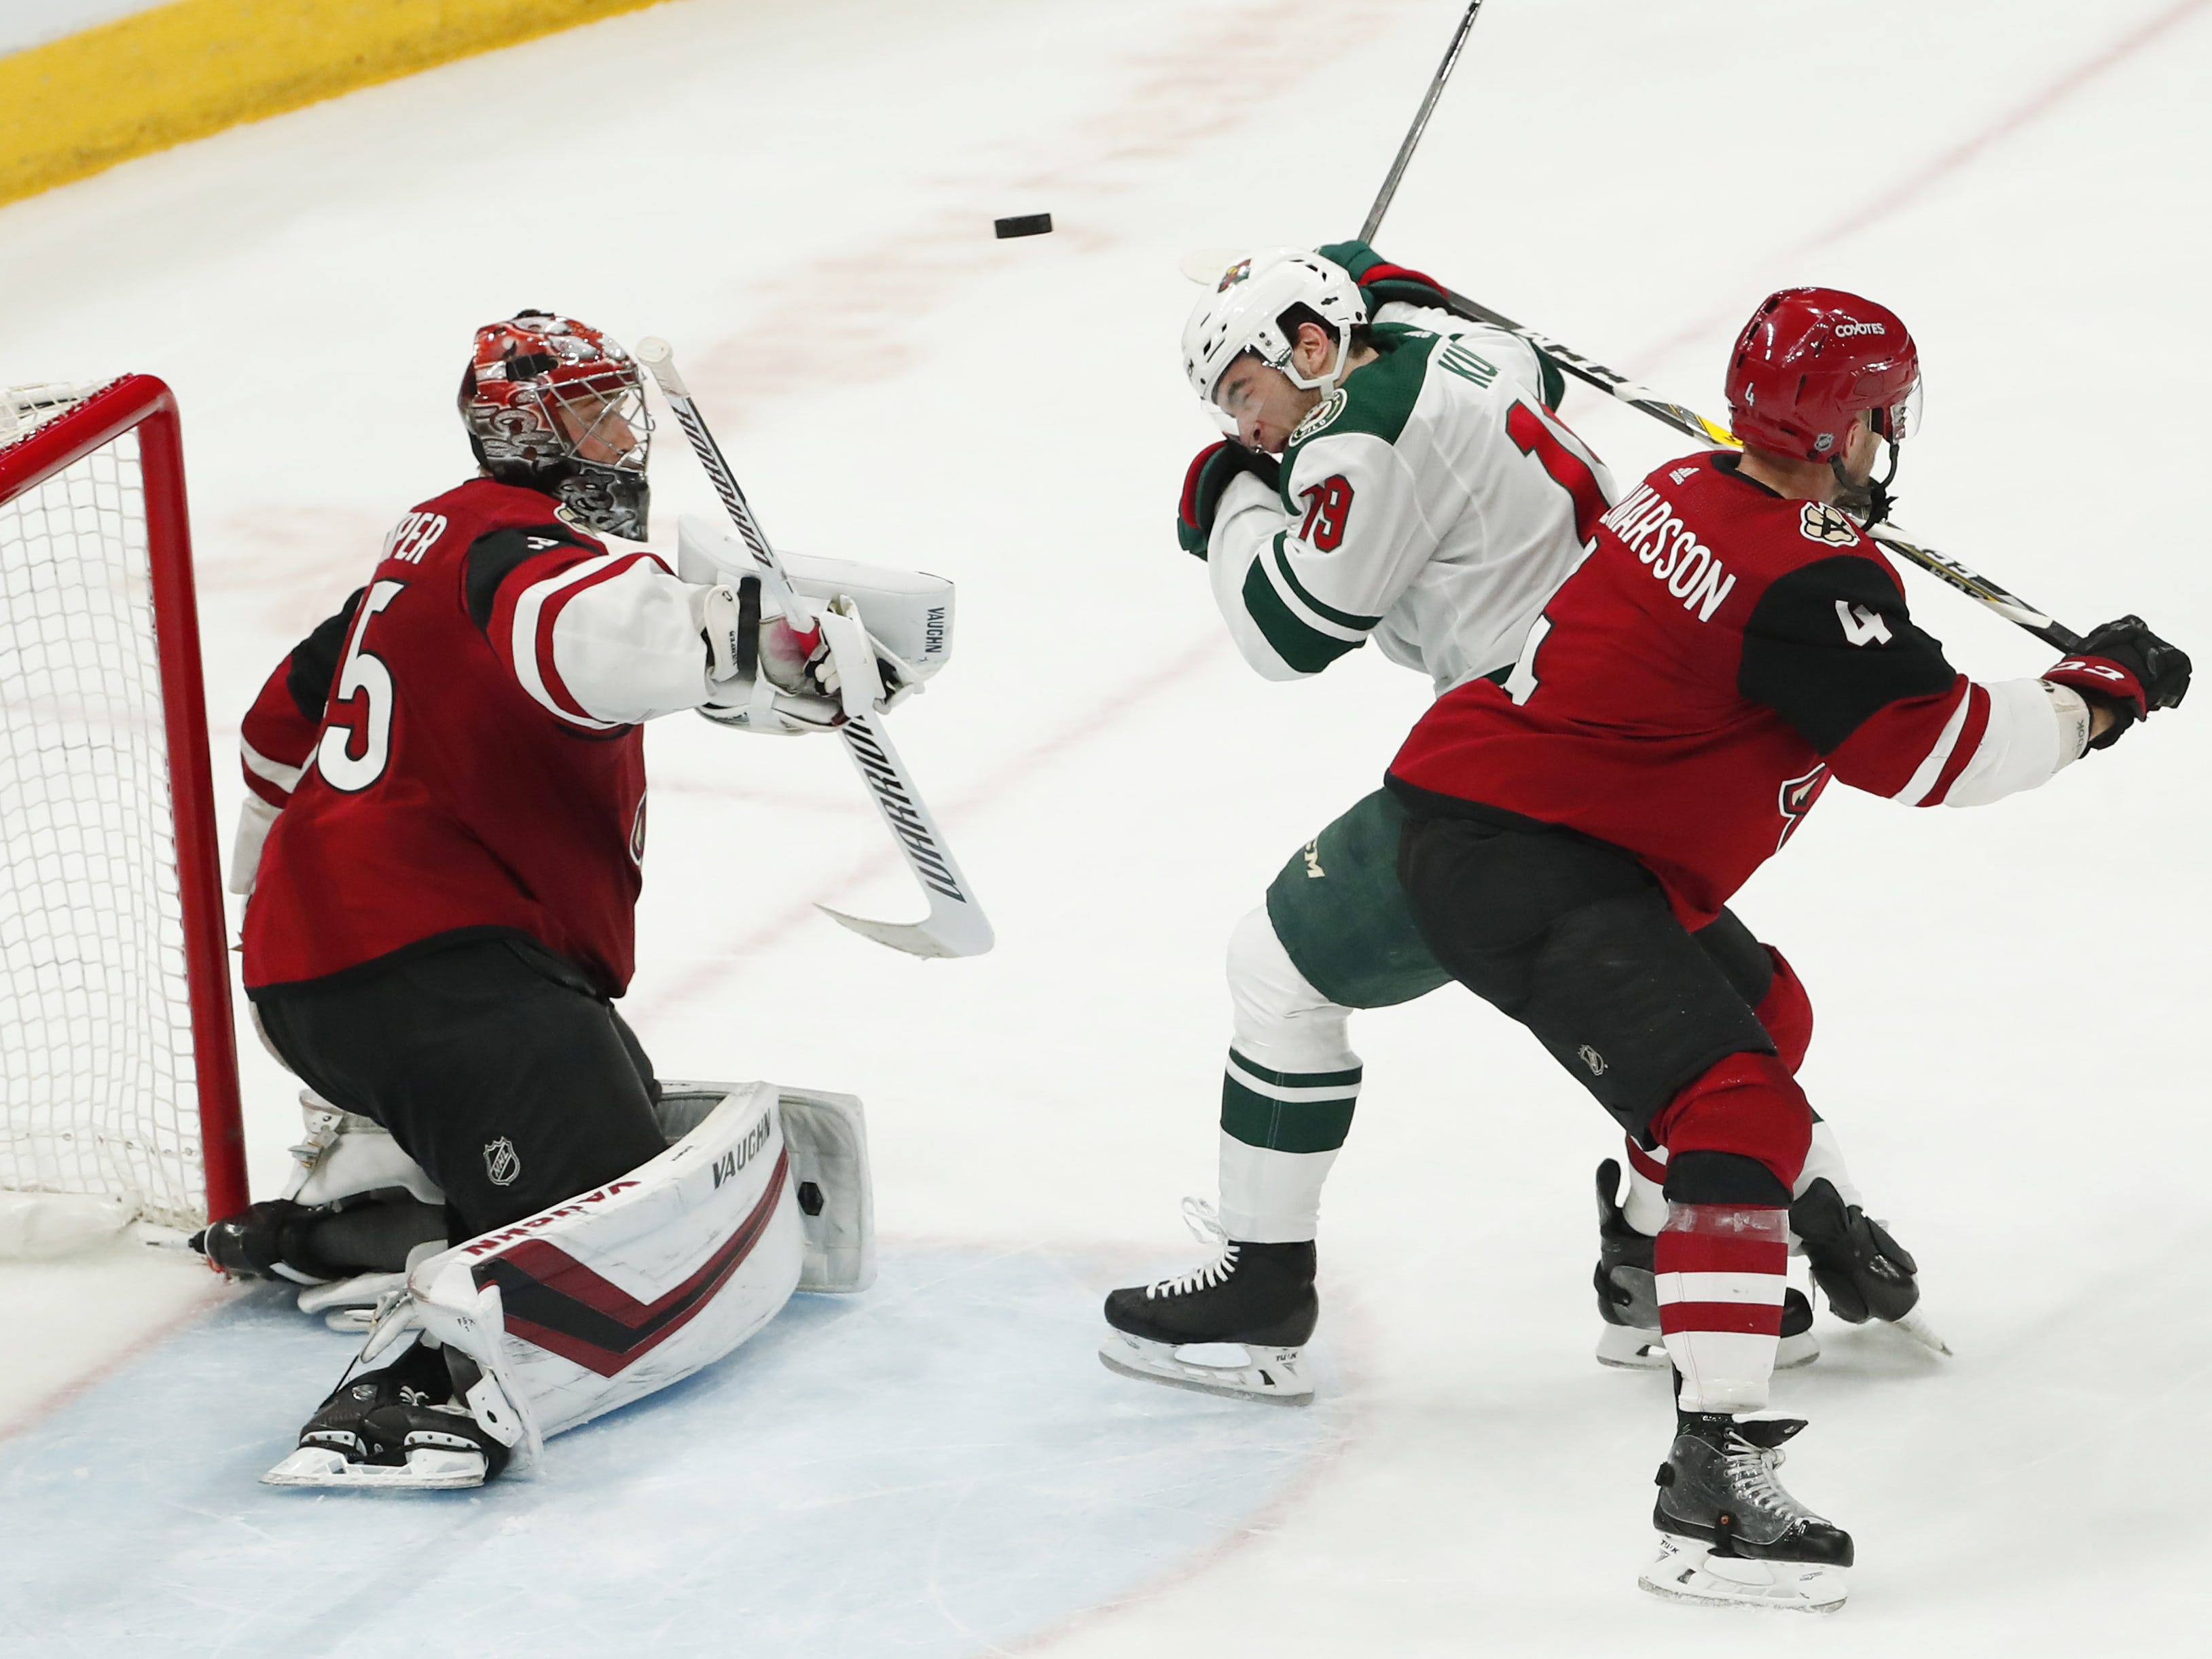 Arizona Coyotes goaltender Darcy Kuemper (35) makes a save as Minnesota Wild center Luke Kunin (19) ducks away from a shot while defended by defenseman Niklas Hjalmarsson (4) during the third period in Glendale March 31, 2019.